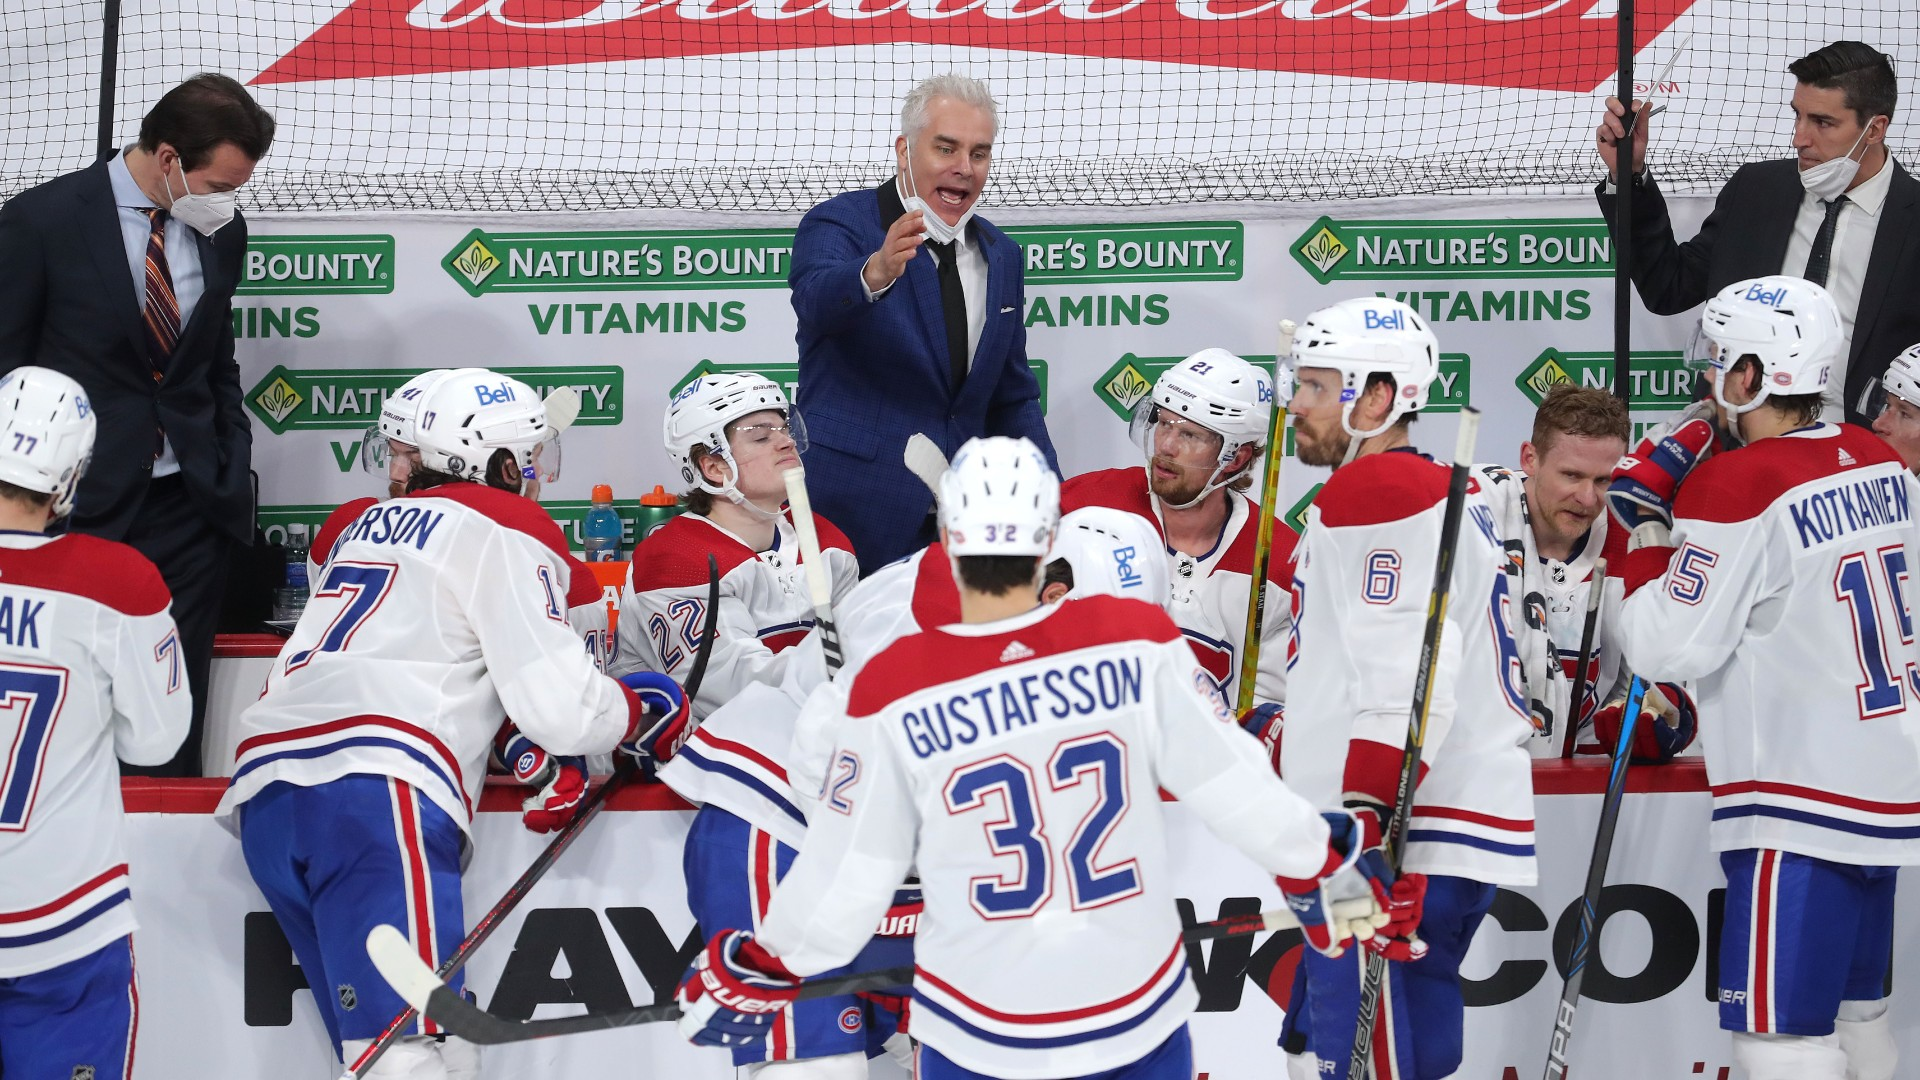 Twitter shows support for Canadiens coach Dominique Ducharme after being sidelined